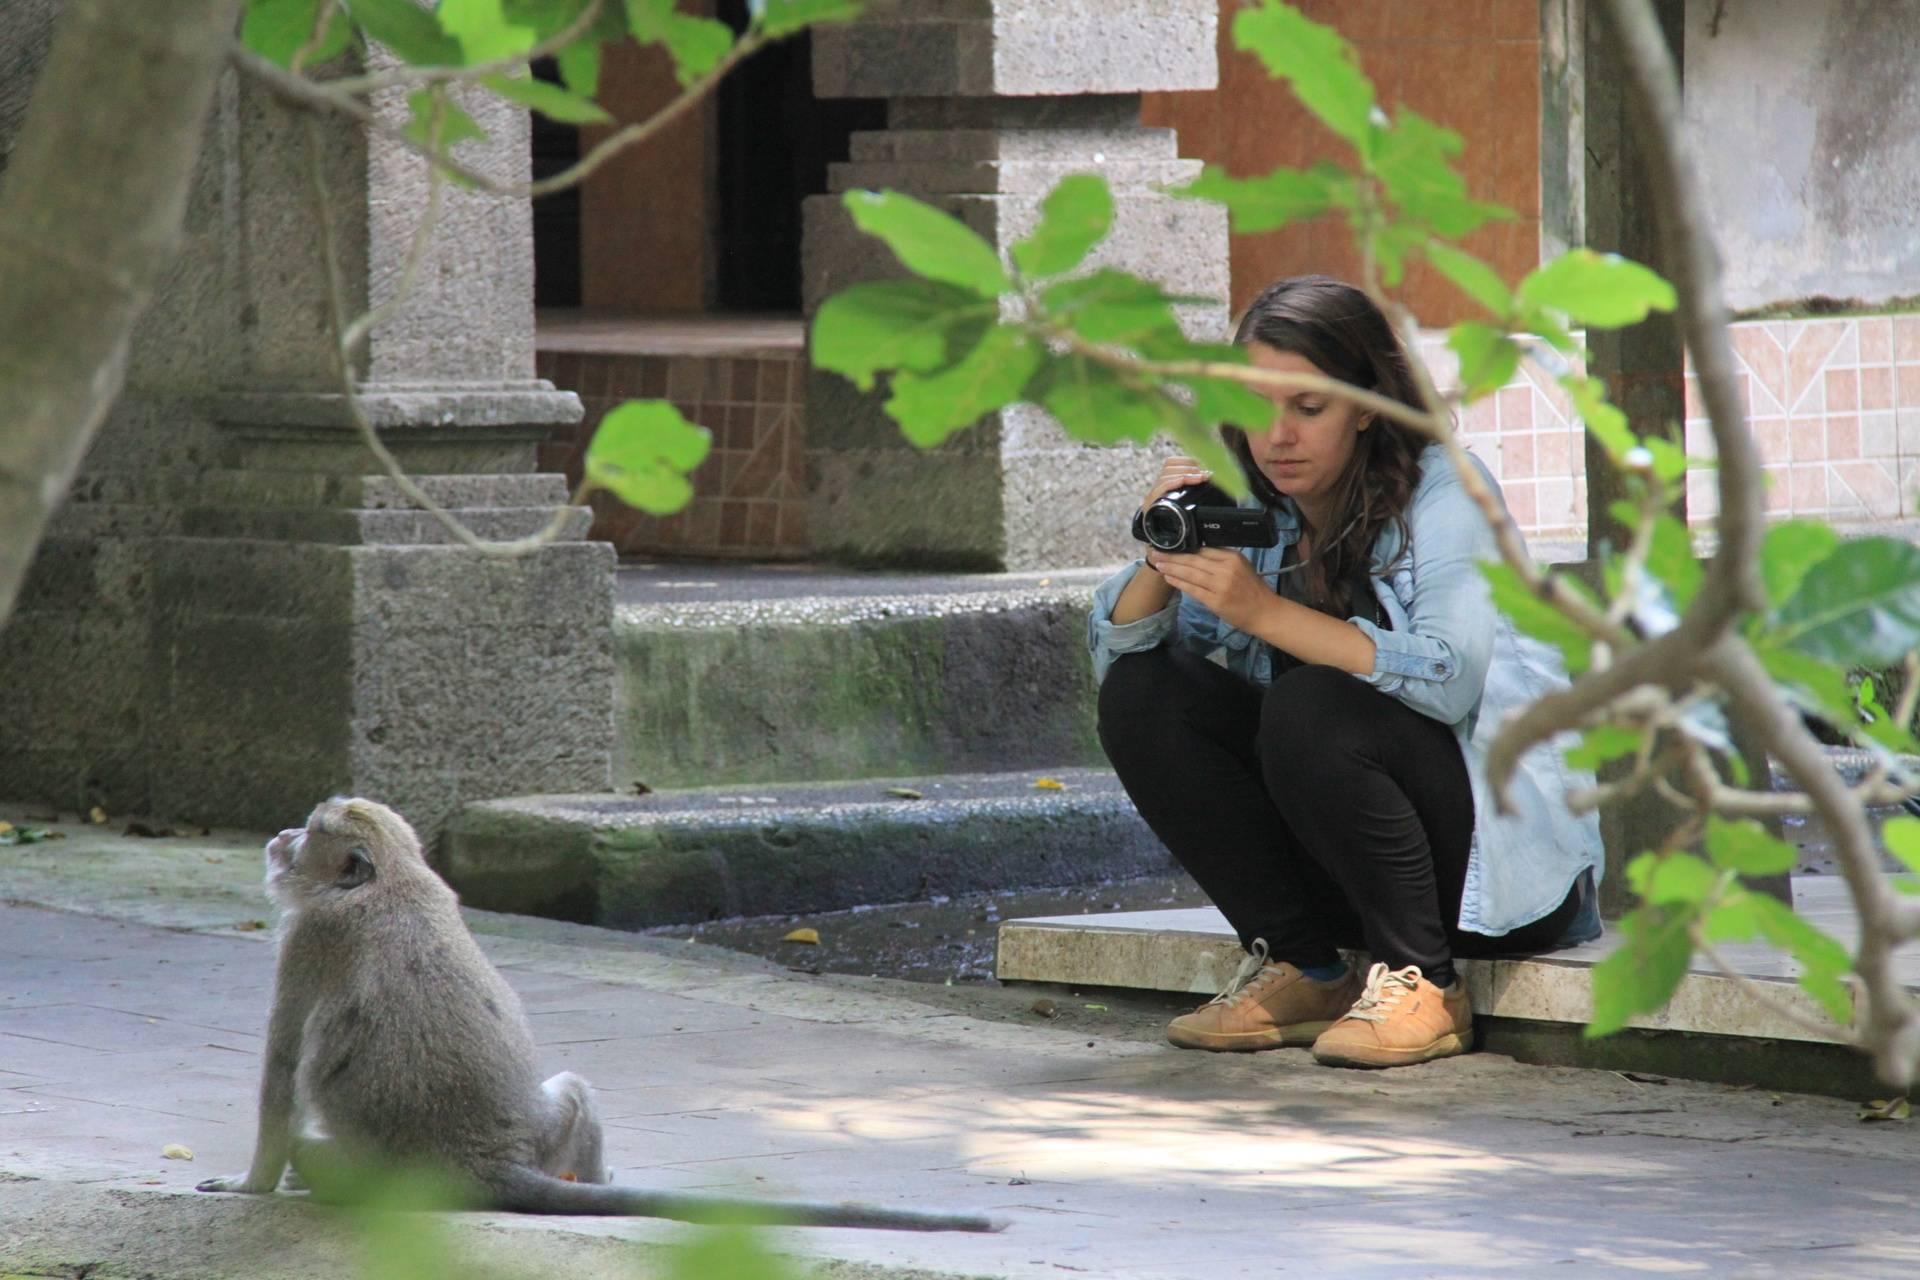 Elenora Neugebauer video-recording an adult male long-tailed macaque (Ubud, Bali, June 2016)